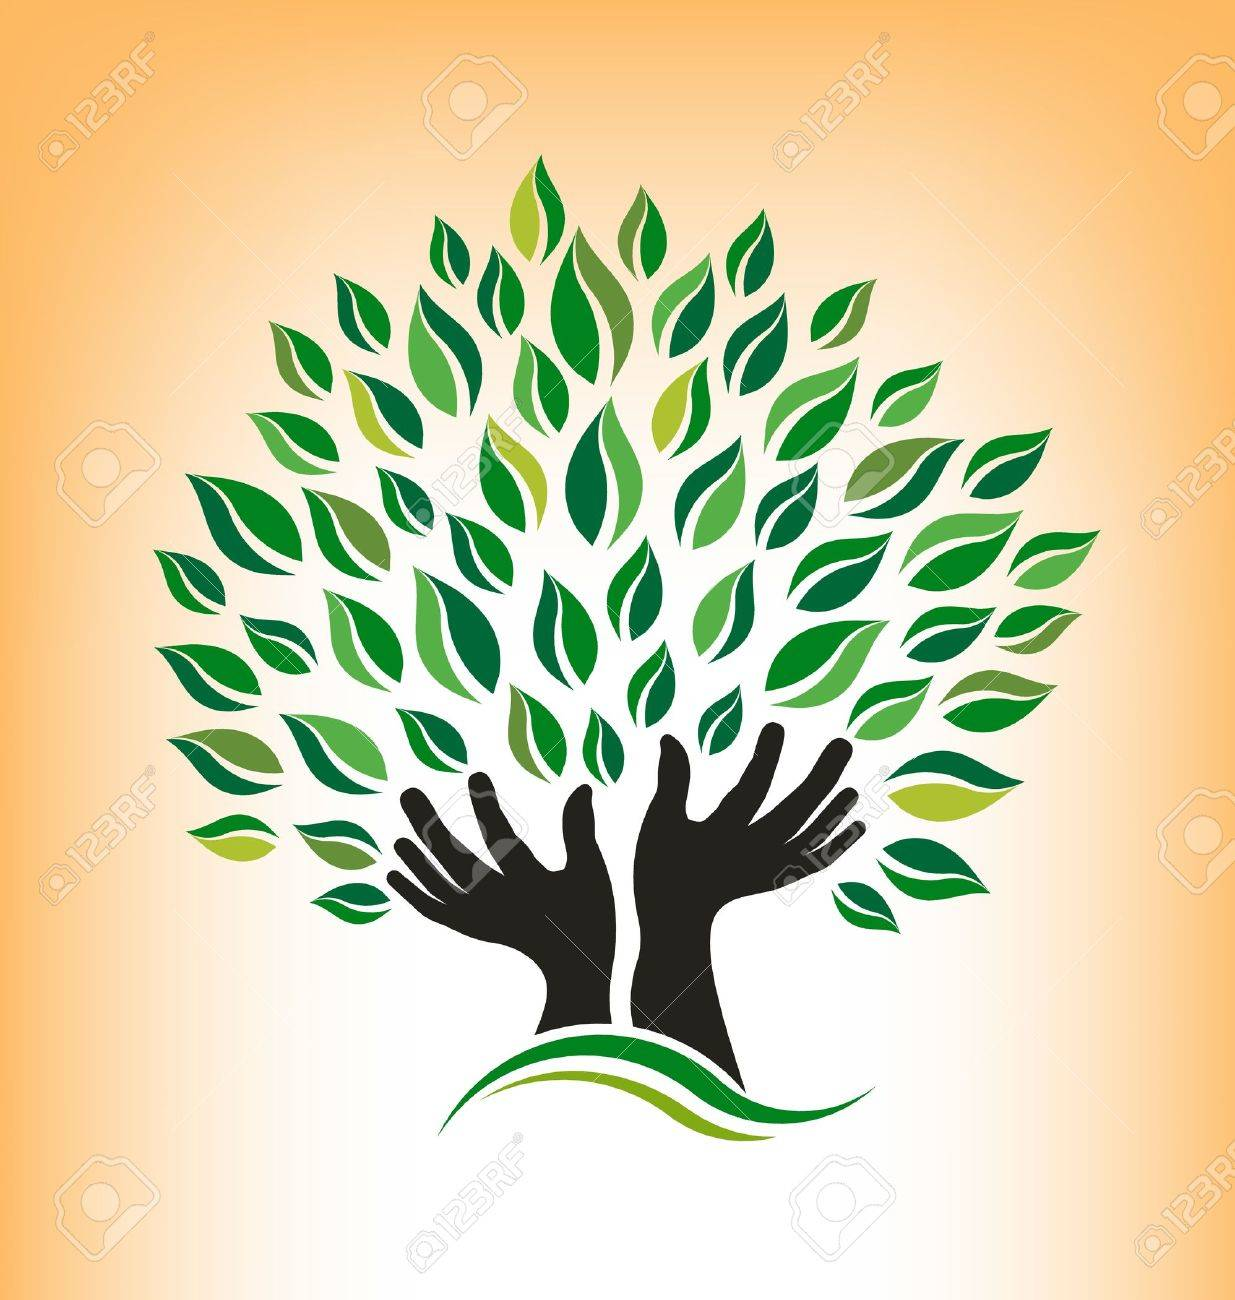 Praying Tree Stock Vector - 21953790